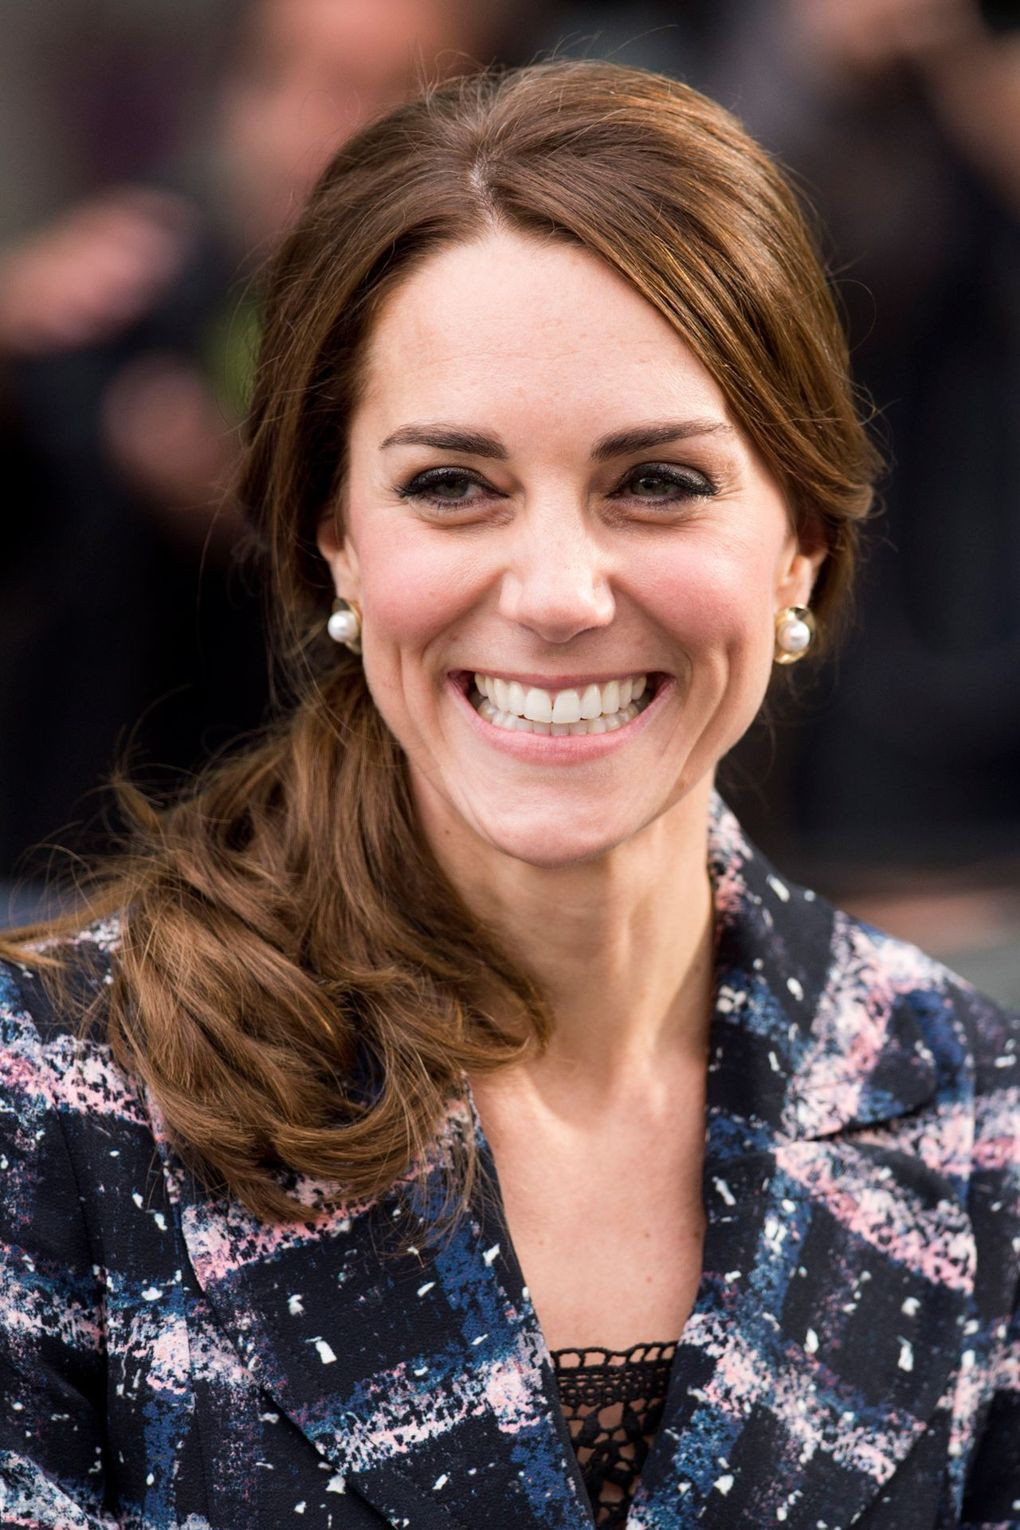 duchess-of-cambridge-3-vogue-14oct16-getty_b